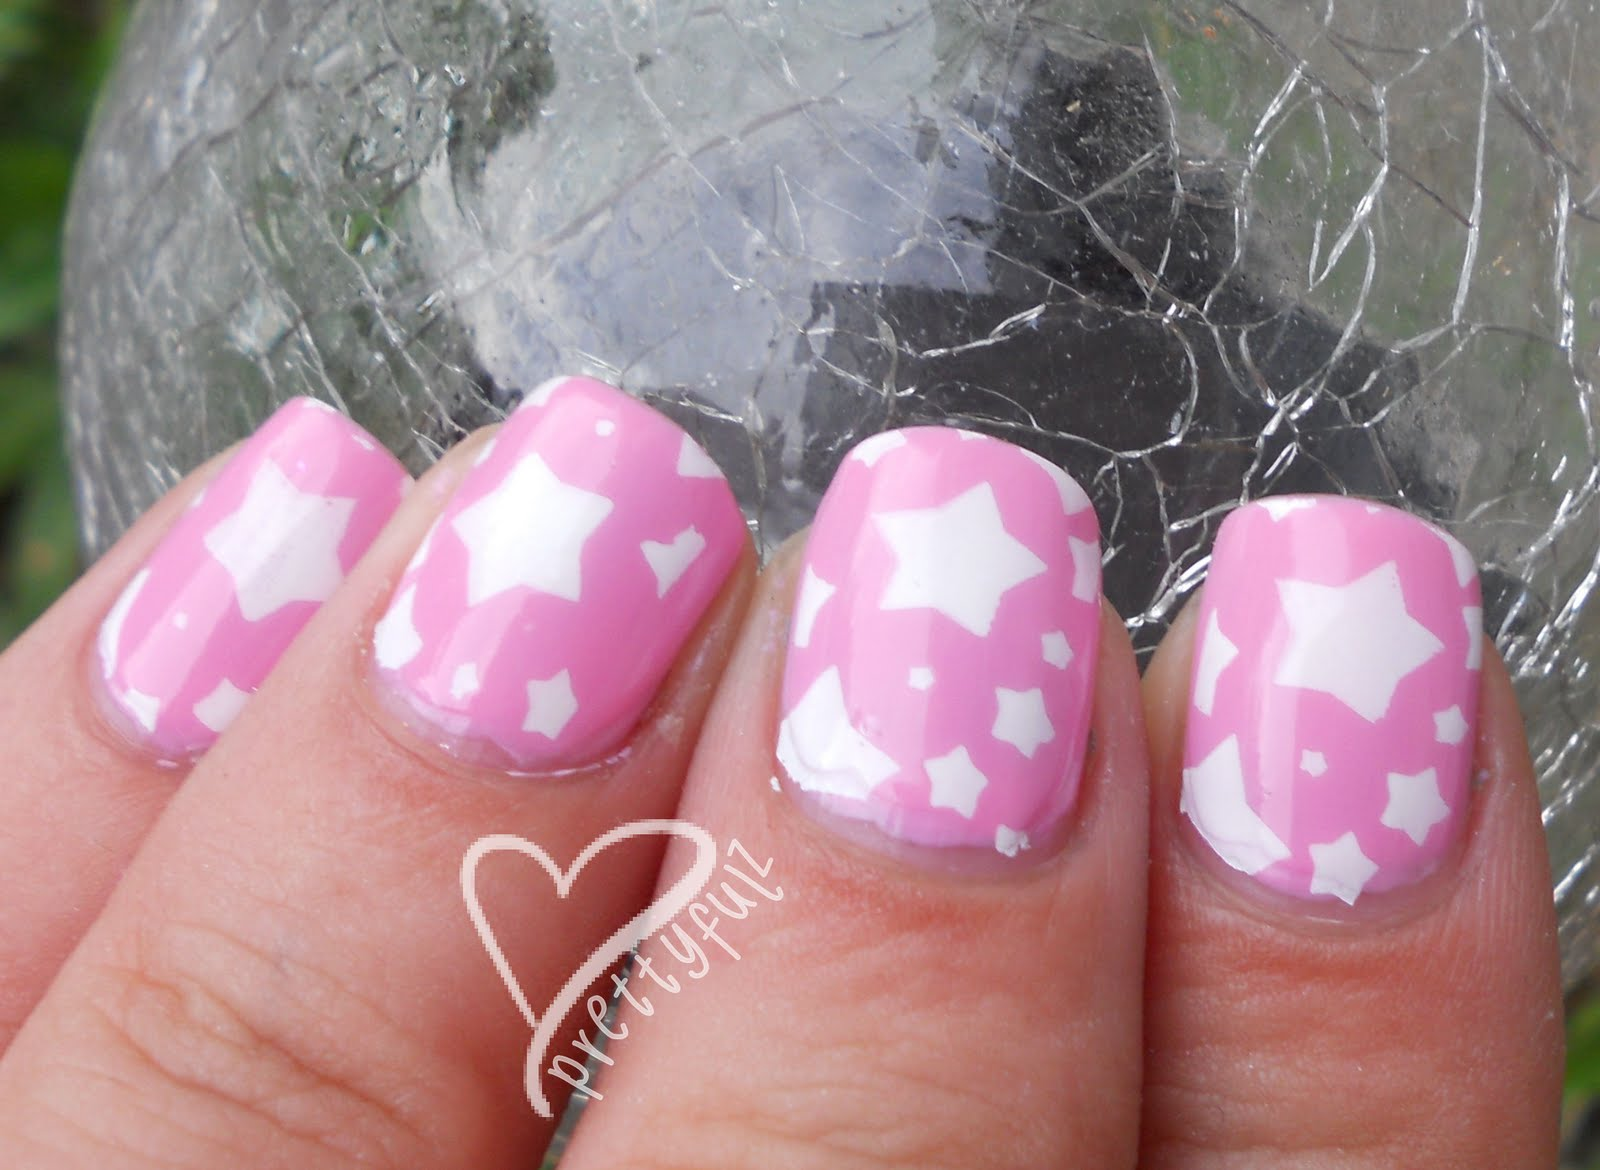 Nail Designs On White Nails | Nail Art Designs